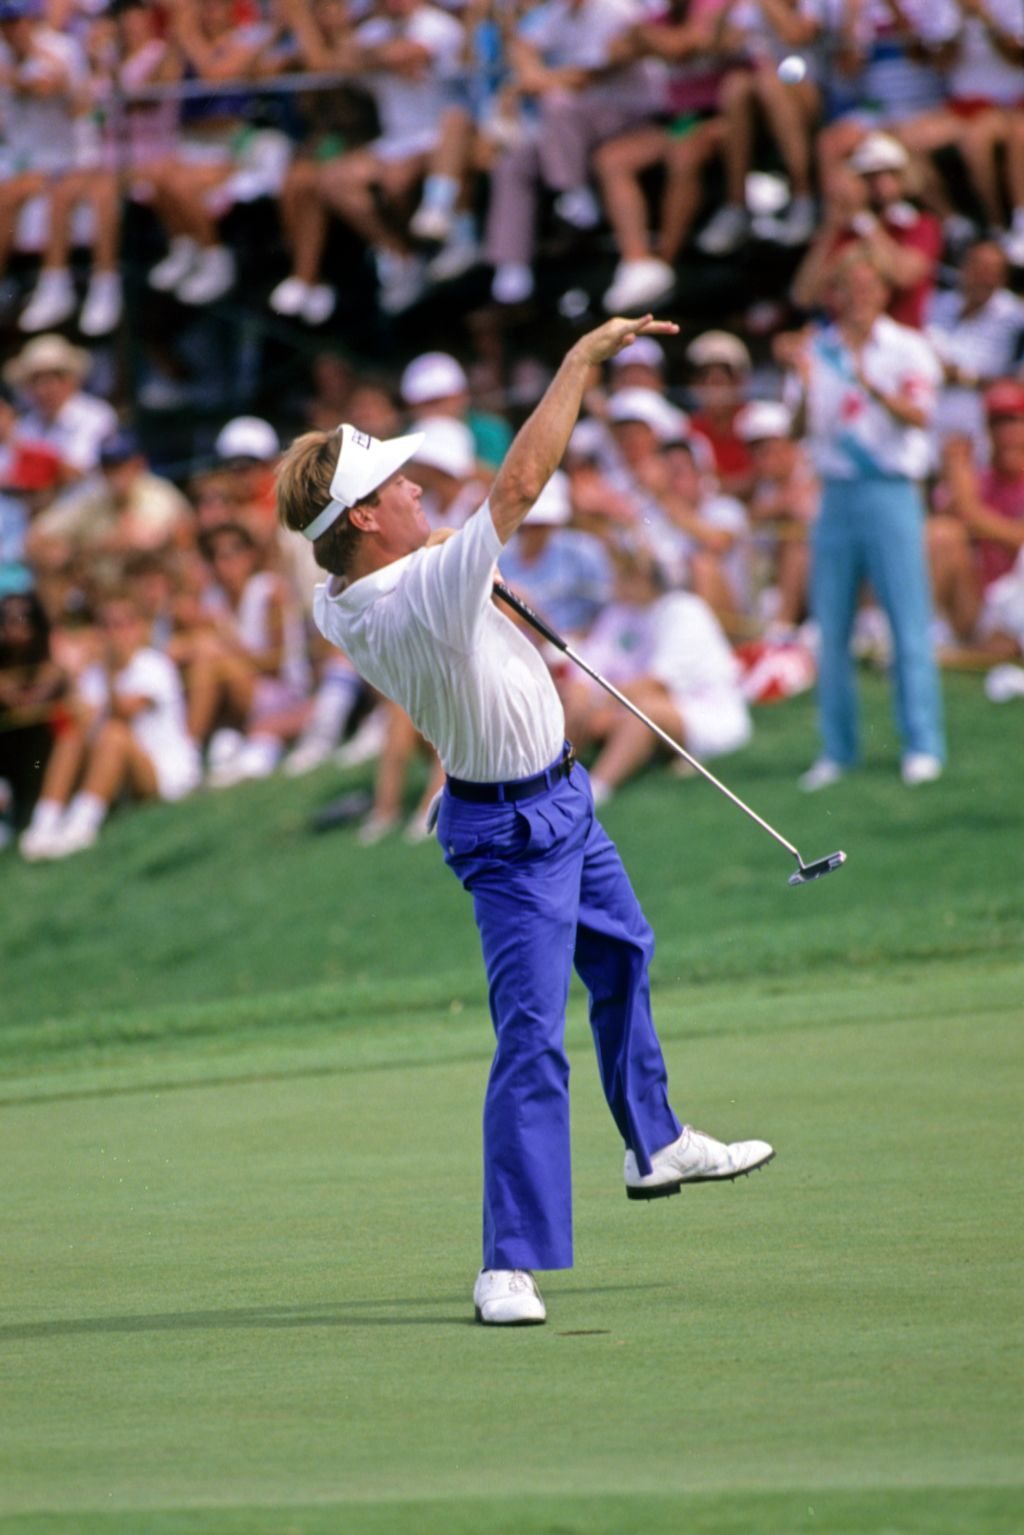 Jeff Sluman throwing his ball into the crowd after winning the 1988 USPGA